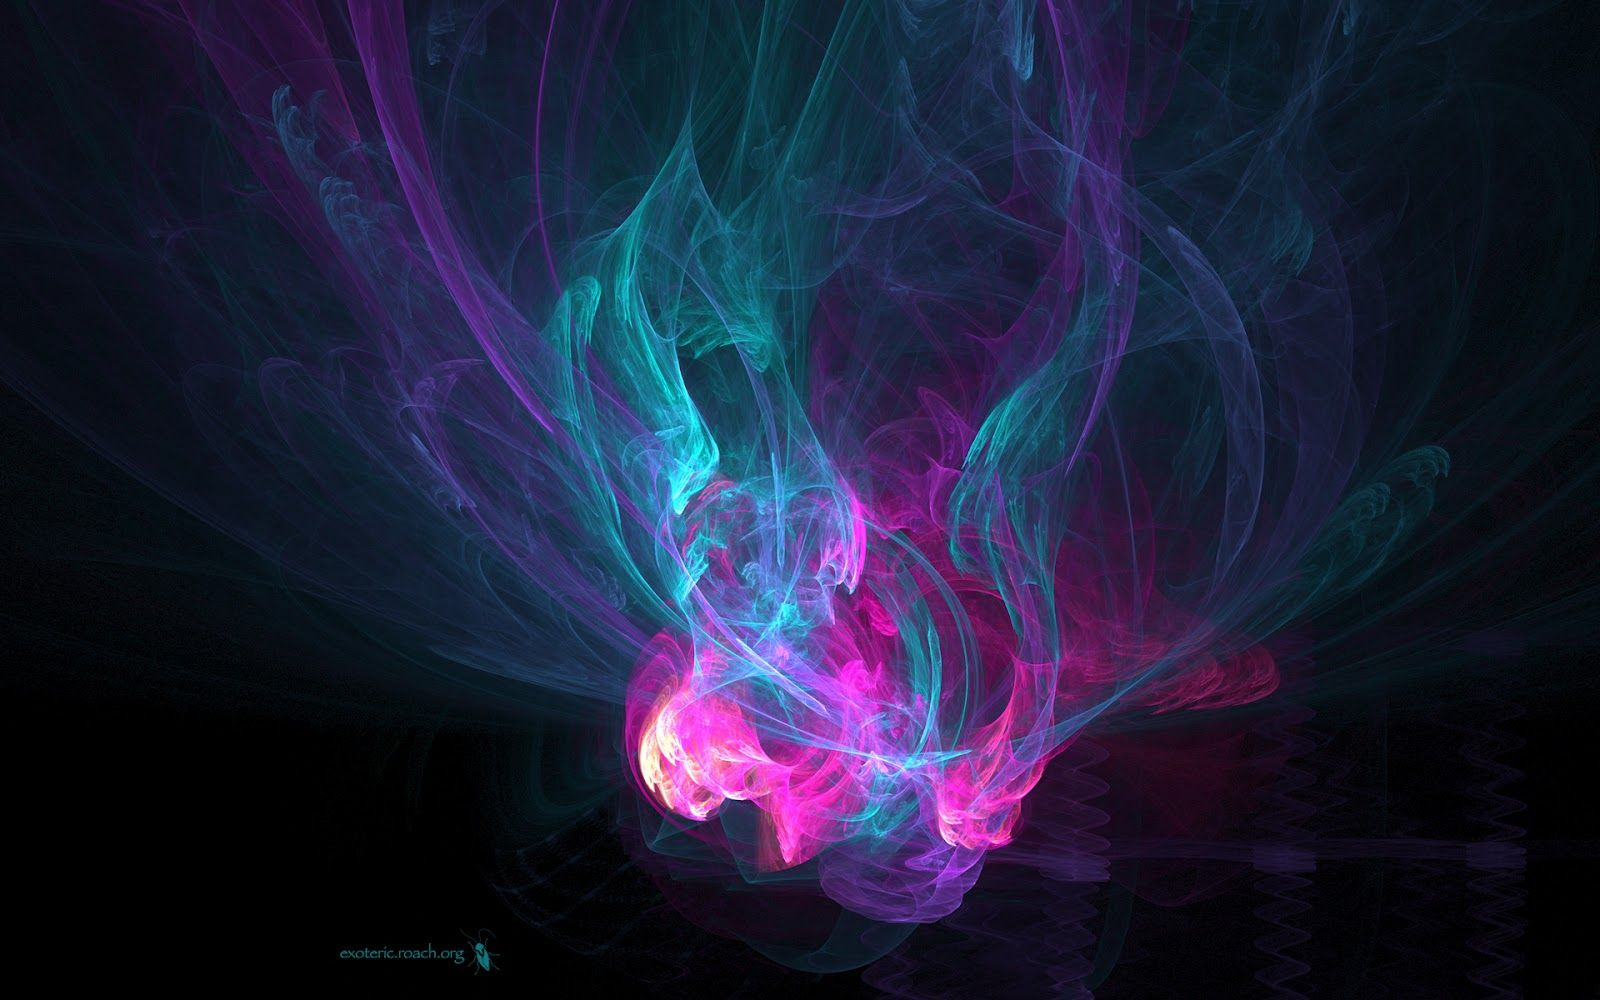 Image For 3d Effect Photoshop Wallpaper Wide Smoke Wallpaper Purple Wallpaper Abstract Wallpaper